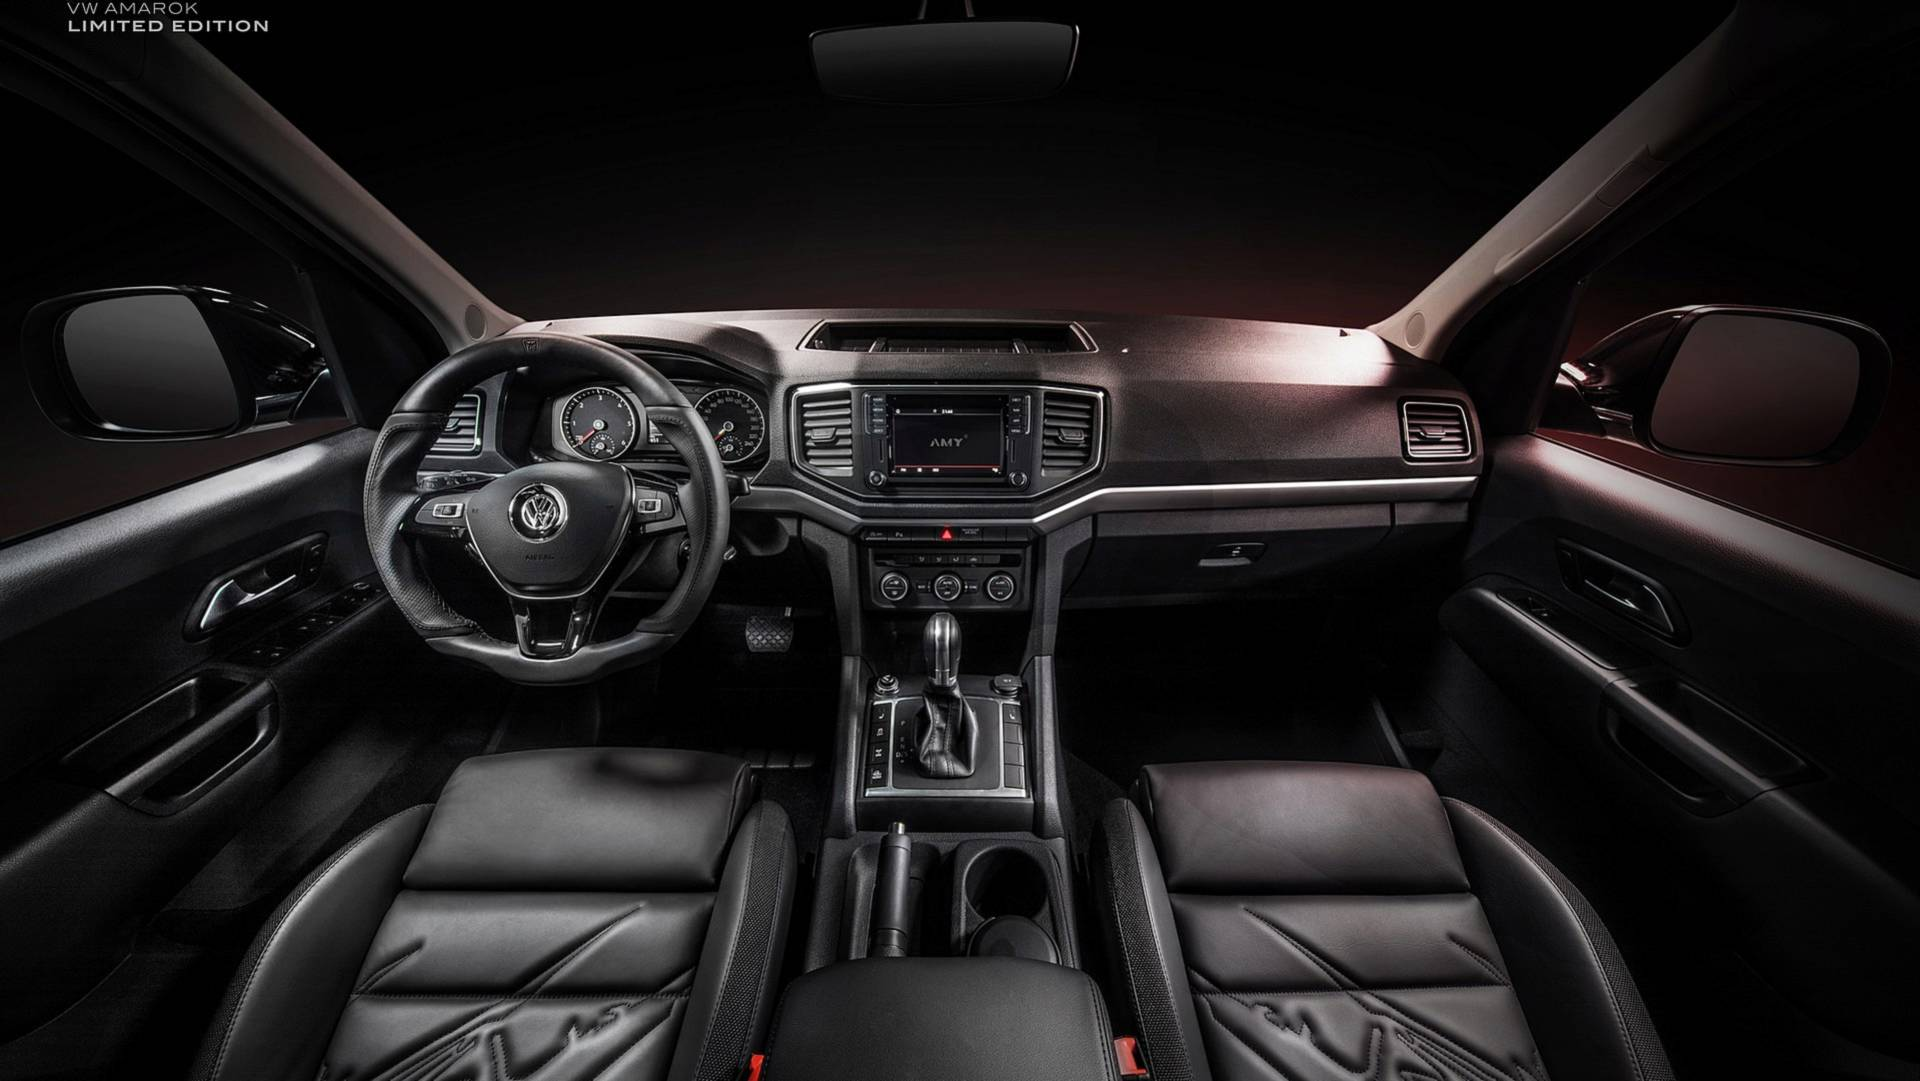 Volkswagen Amarok Amy by Carlex Design (12)